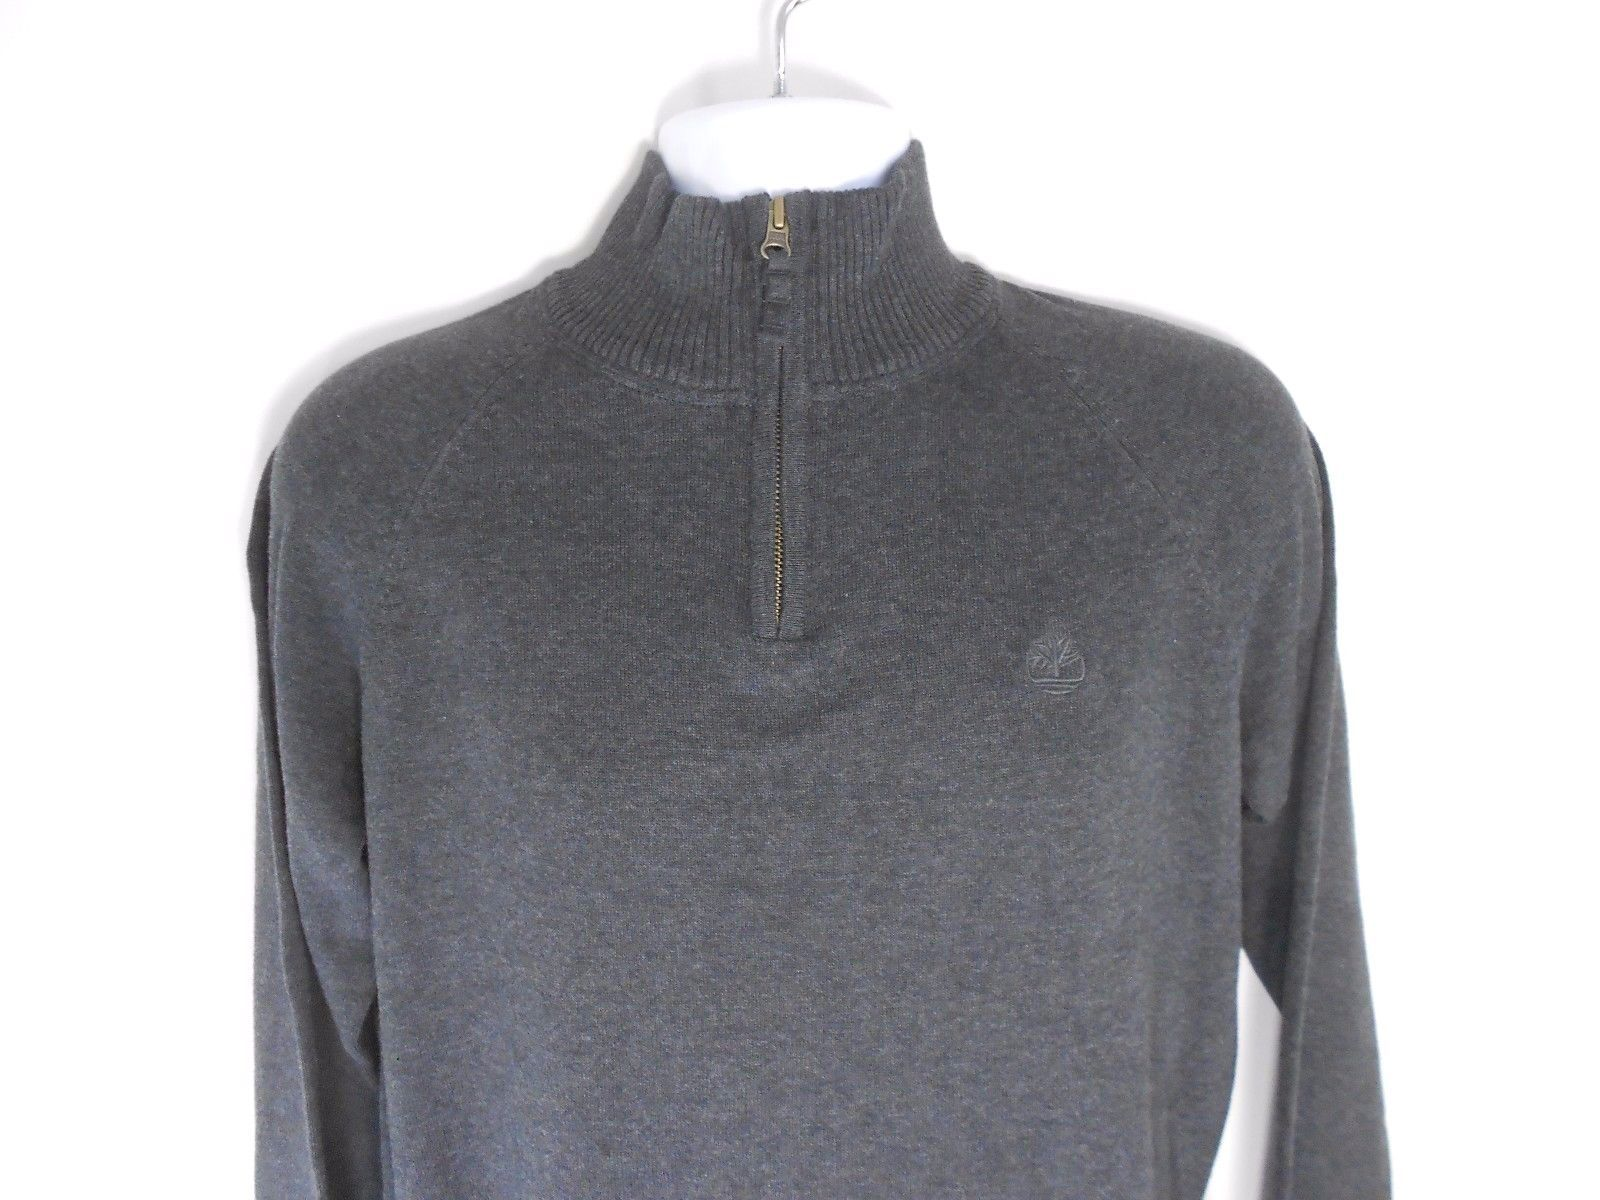 TIMBERLAND HALFZIP  MEN'S DARK GREY SWEATER SZ M, #6267J-013 $78.